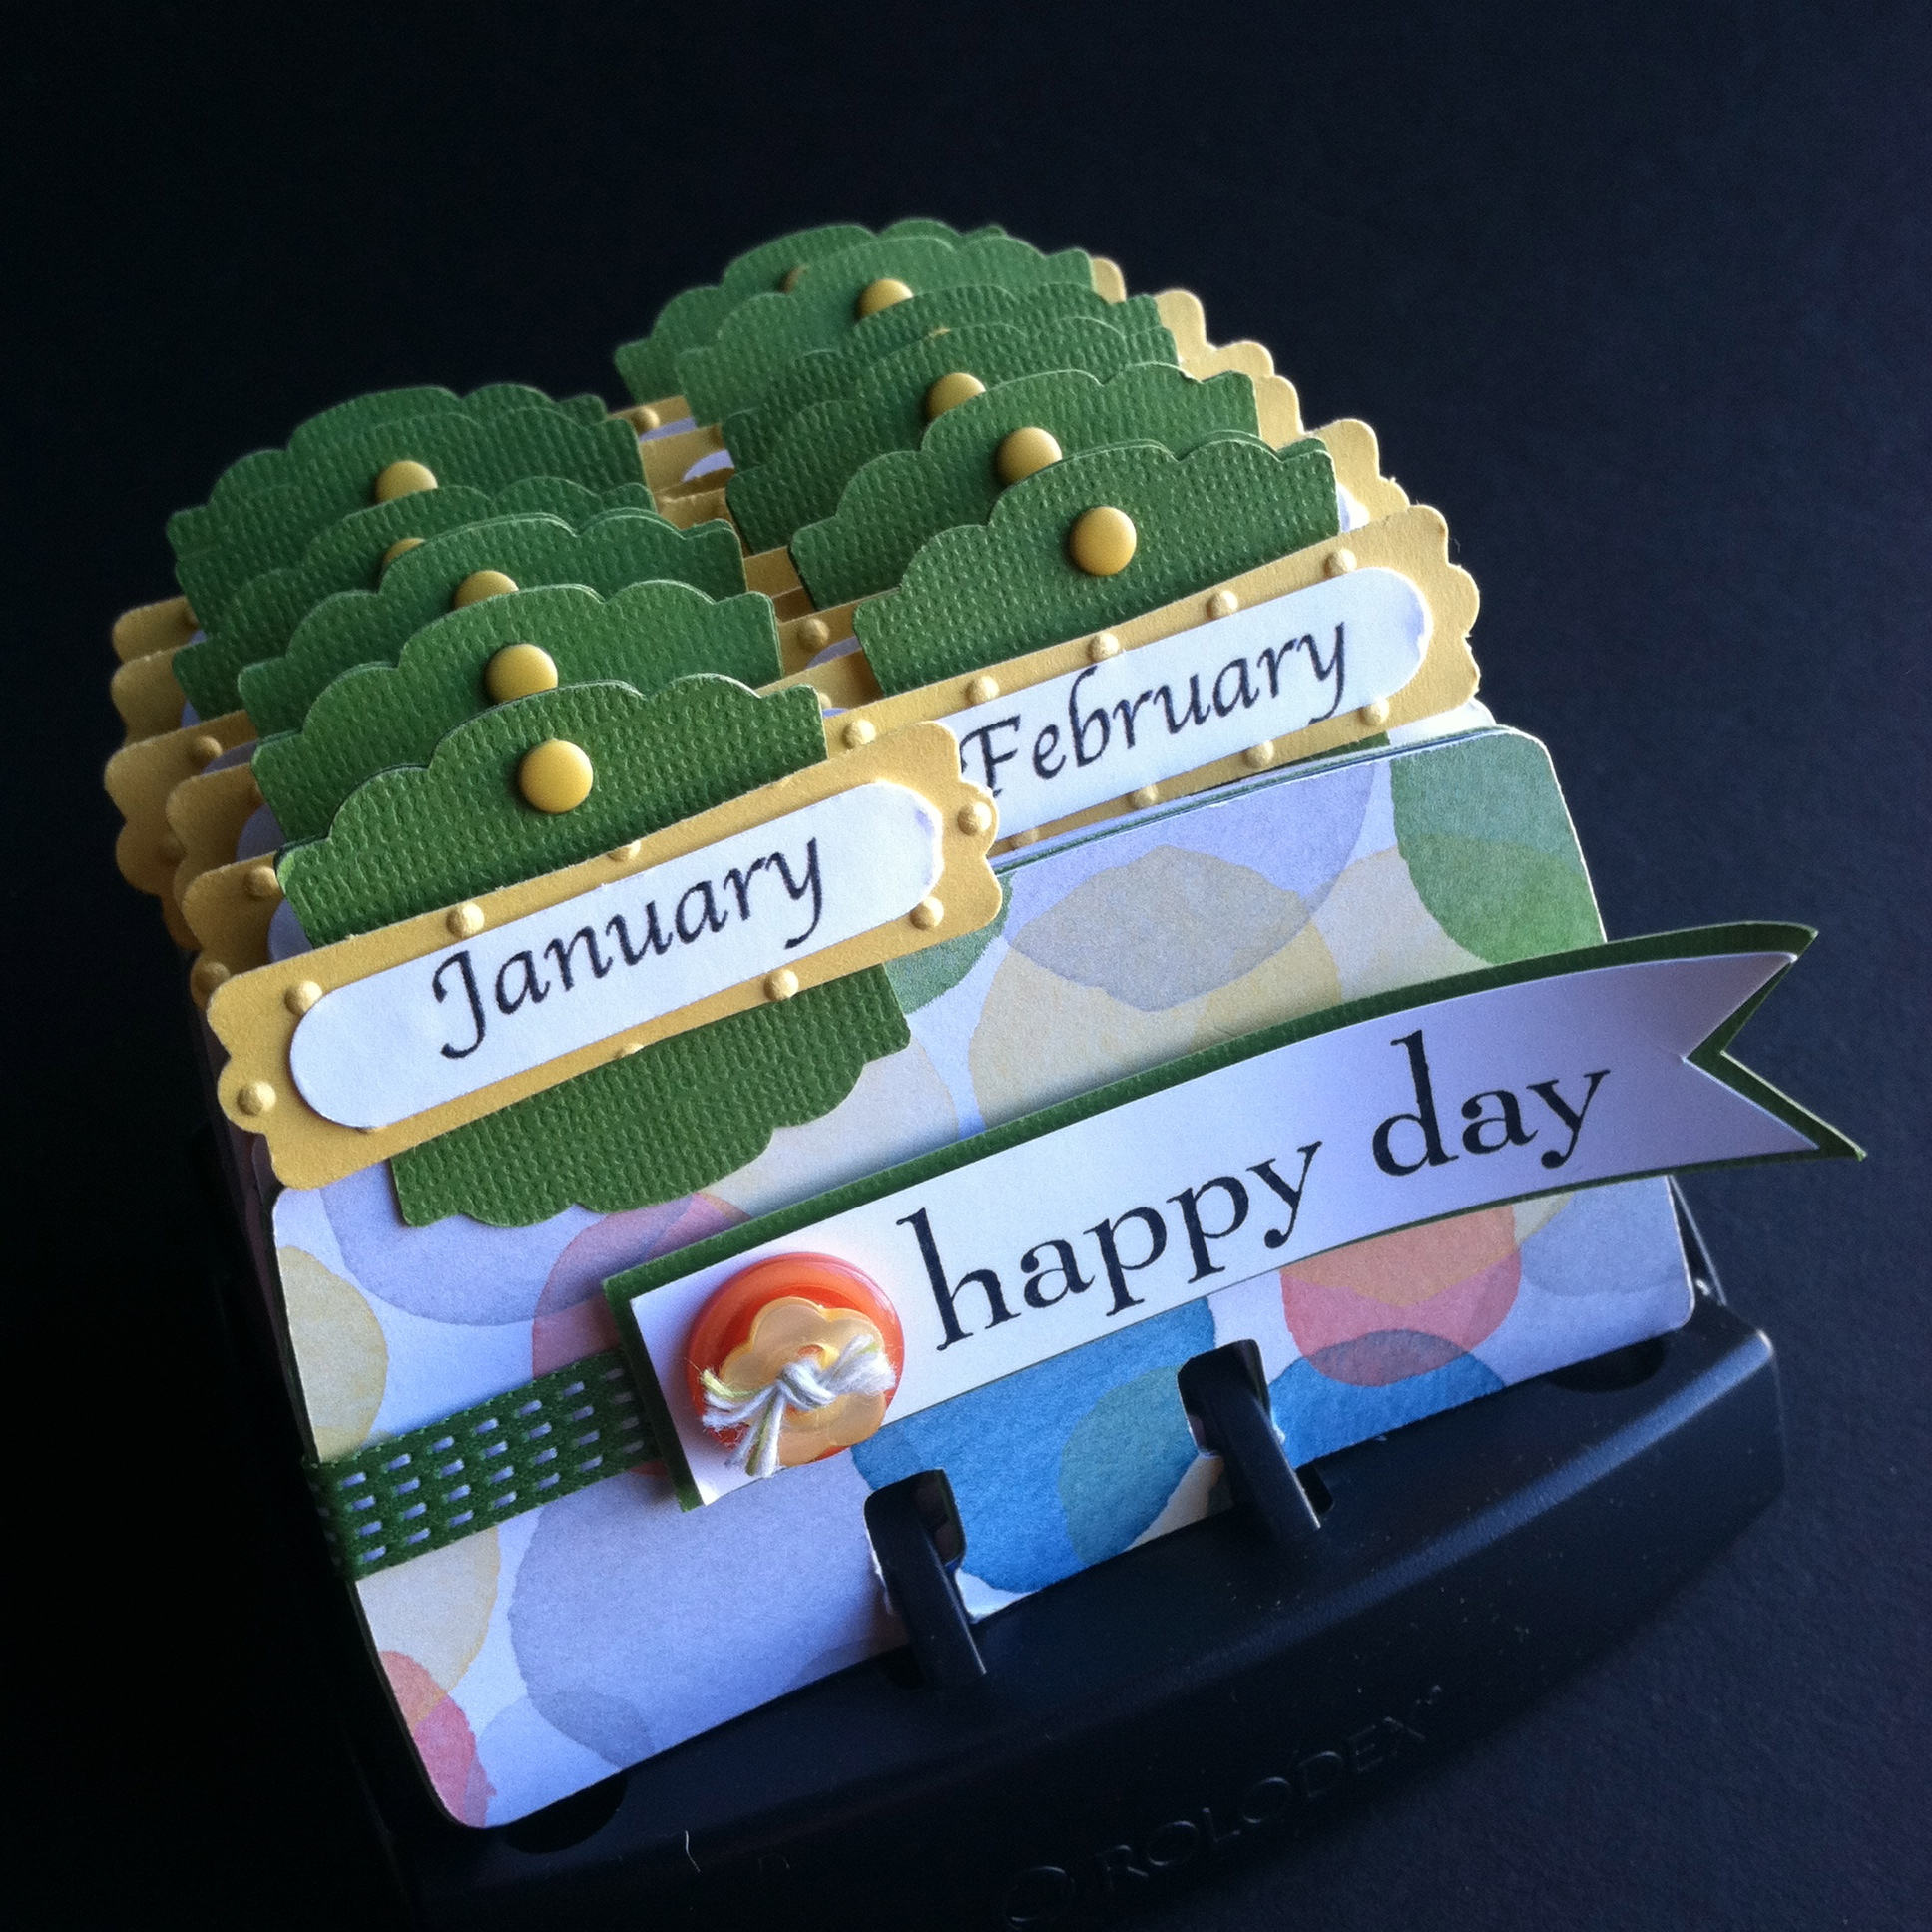 Rolodex Perpetual Calendar Featuring Watercolor Wonder Designer Series Paper from Stampin' Up!